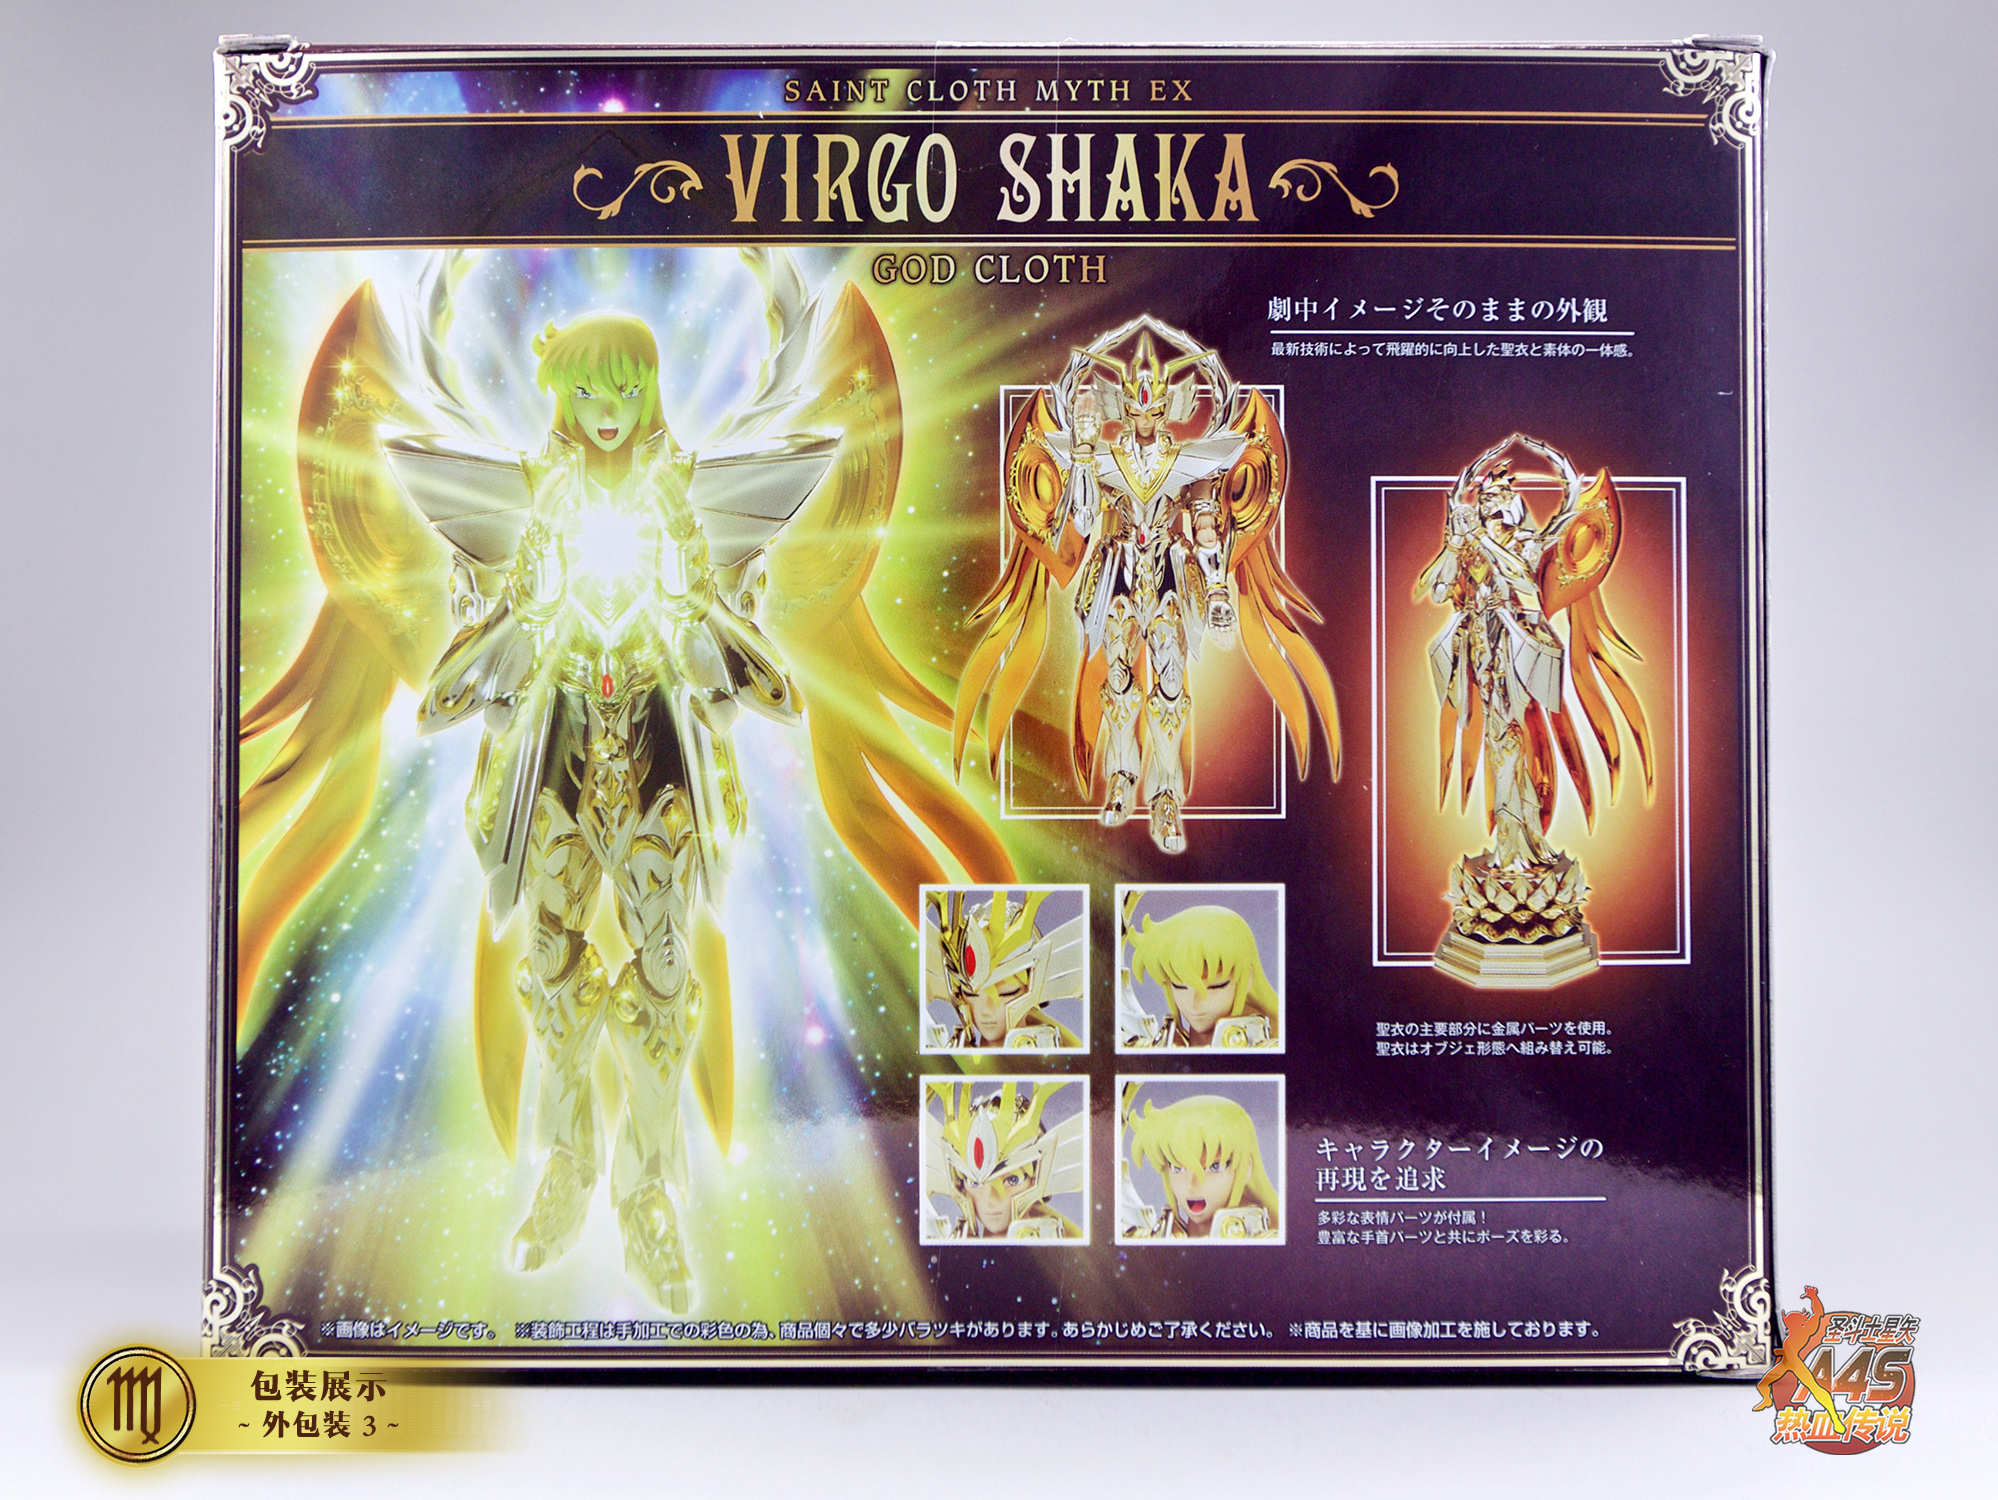 [Soul of Gold] Virgo Shaka God Cloth